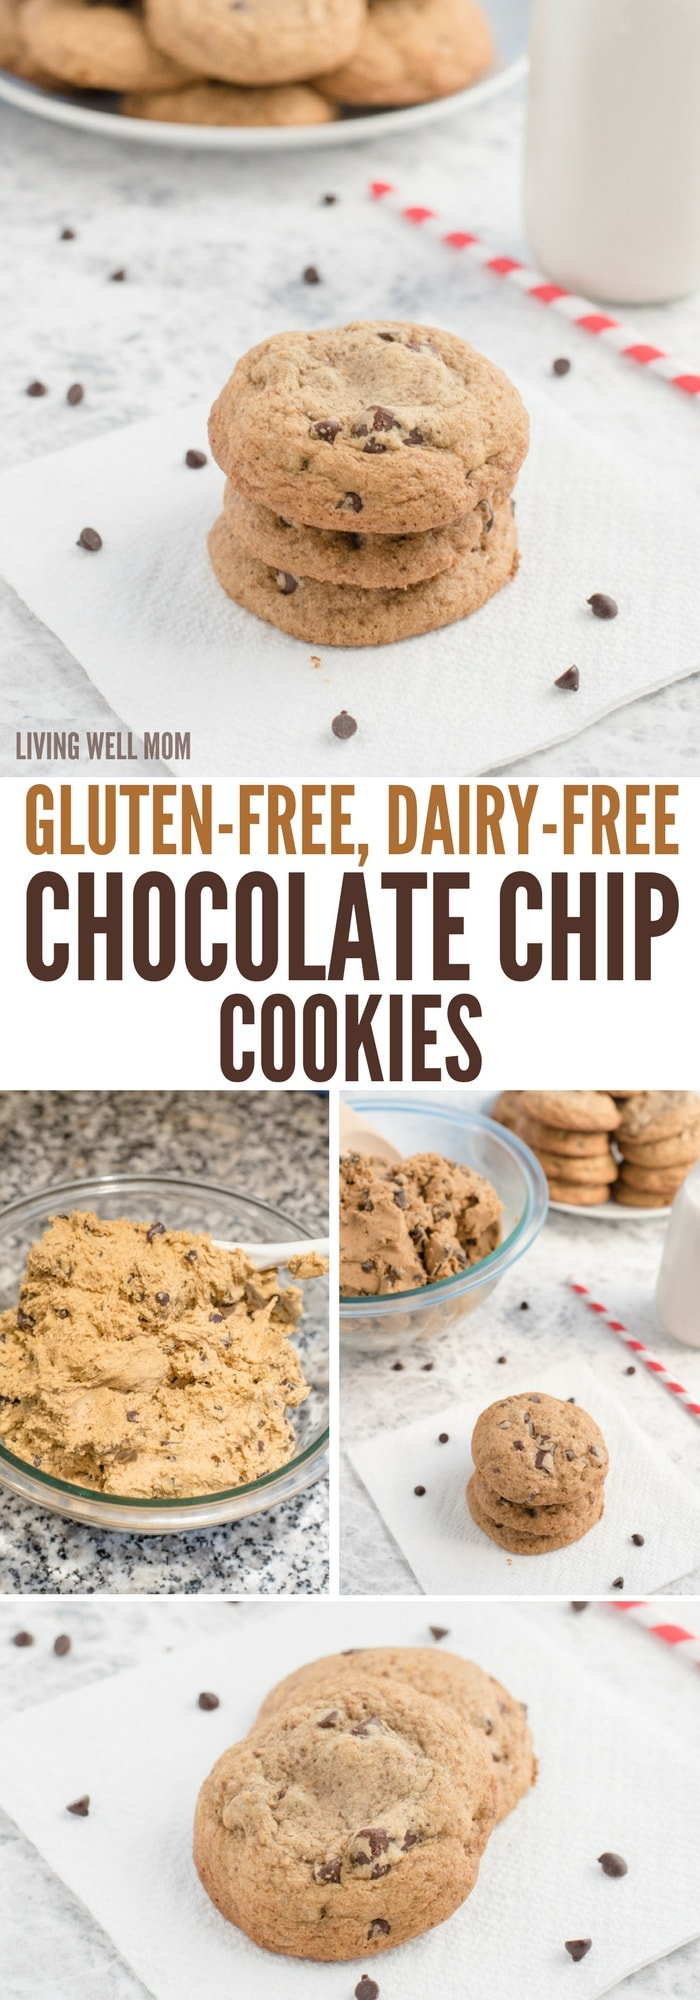 Easy Chocolate Chip Recipe For Kids